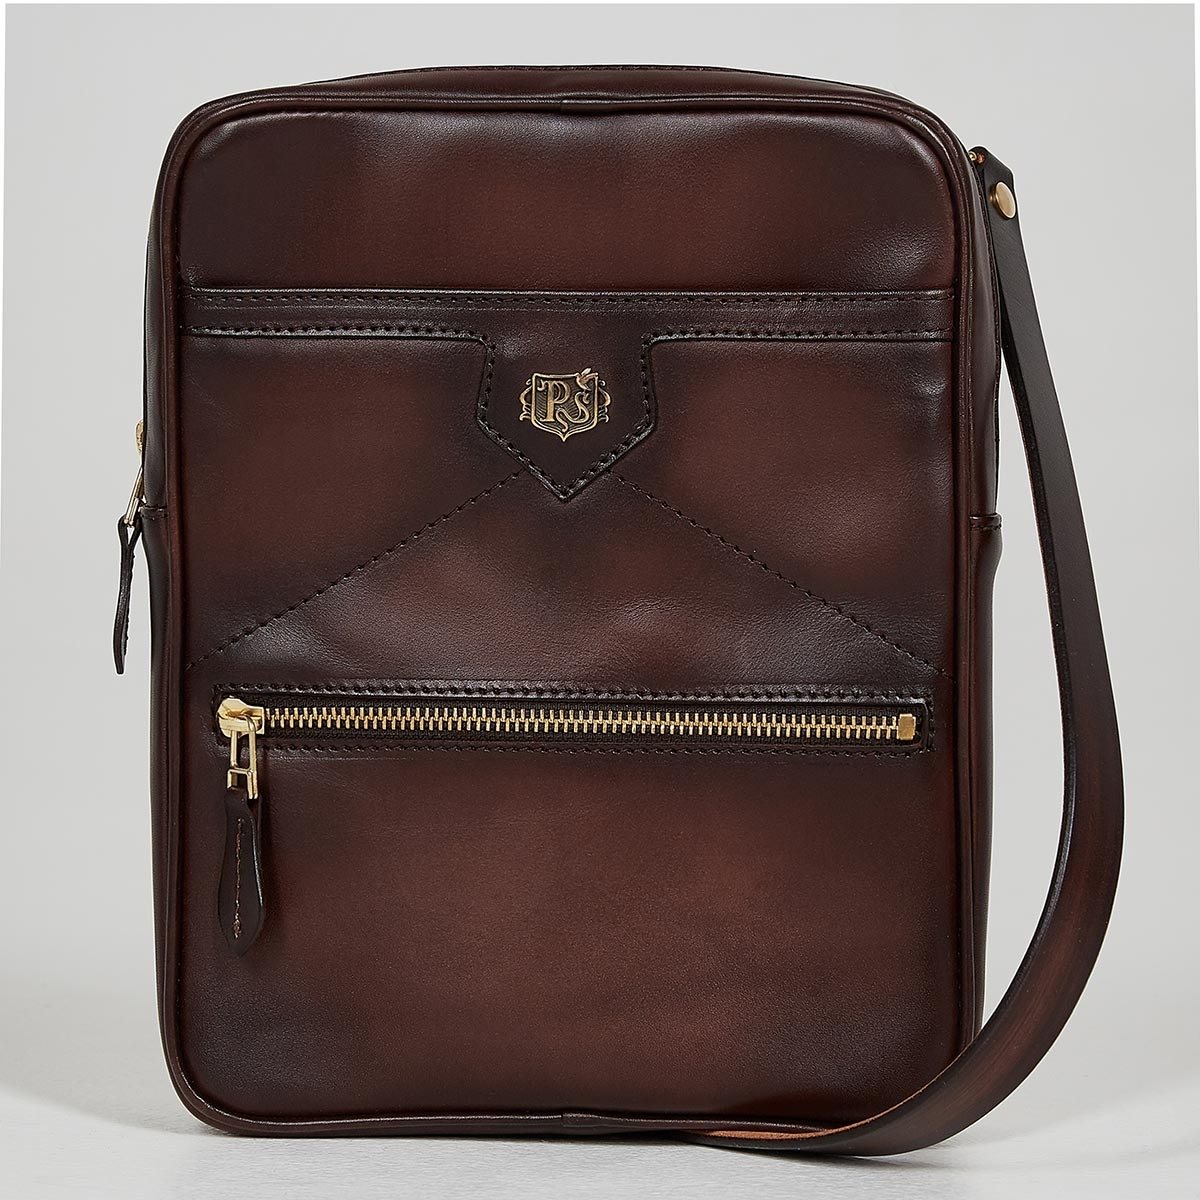 Crossbody bag MEZZO brownie